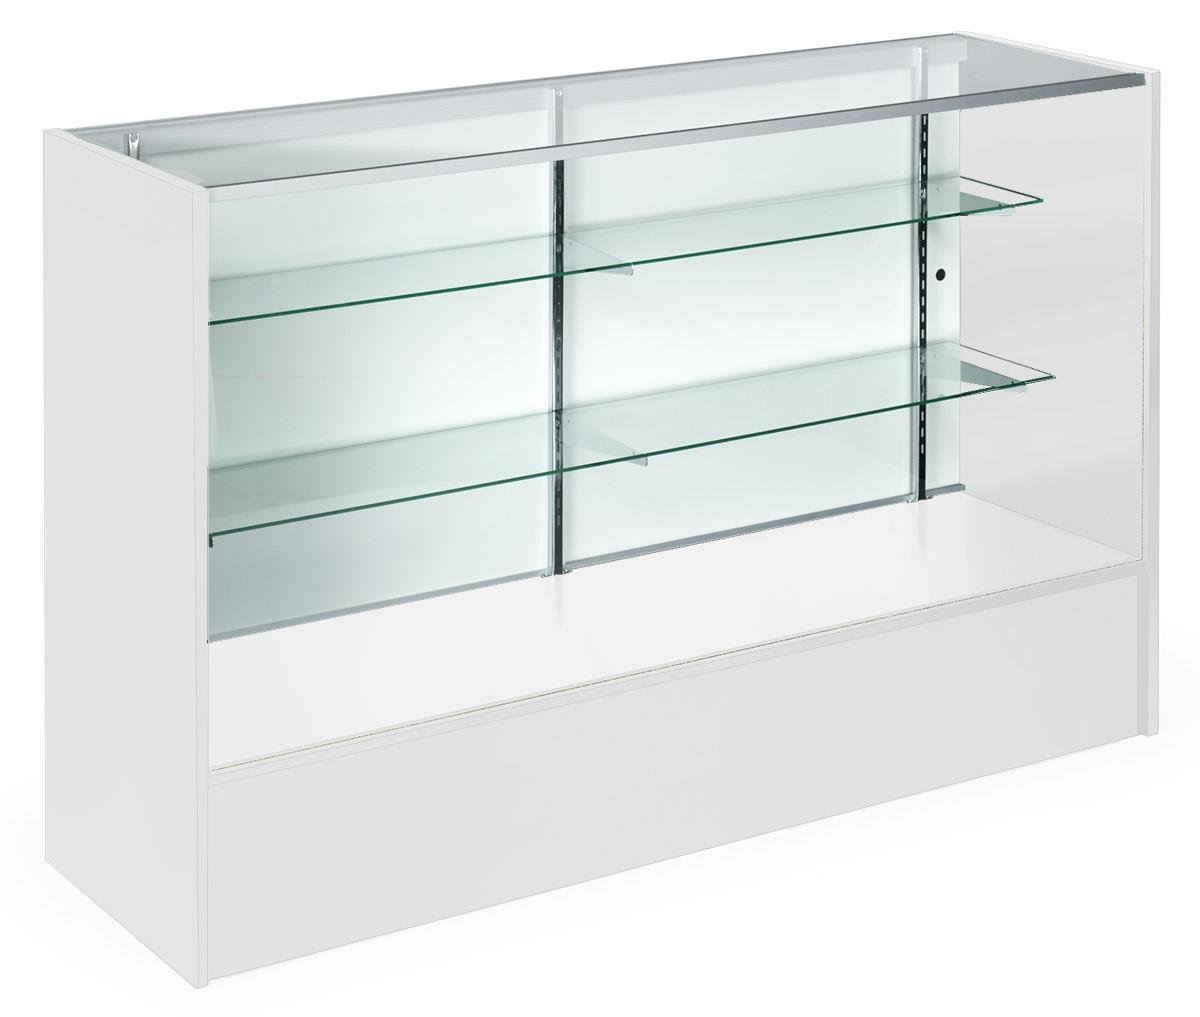 Displays2go Full Vision Display Cases, Melamine Panels, Anodized Aluminum, Tempered Glass Shelves - White (MRC5WHTKD)